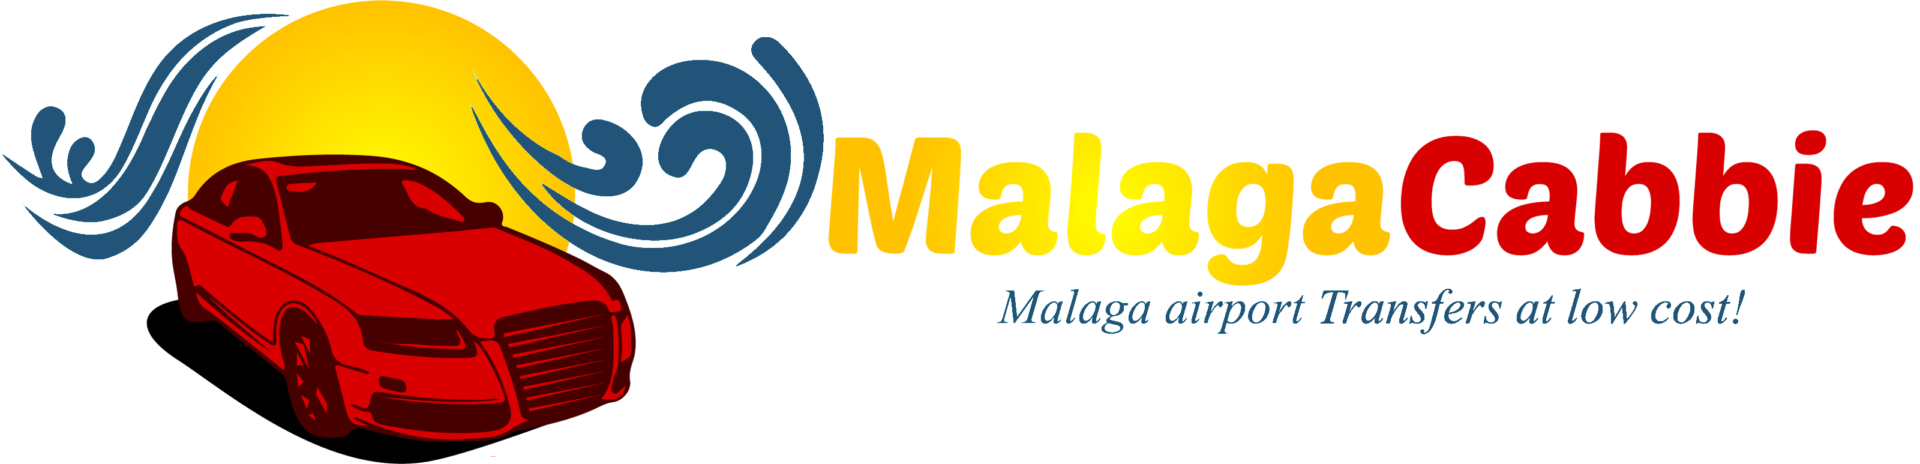 Malaga Cabbie | Save Money booking your Malaga Taxi Service